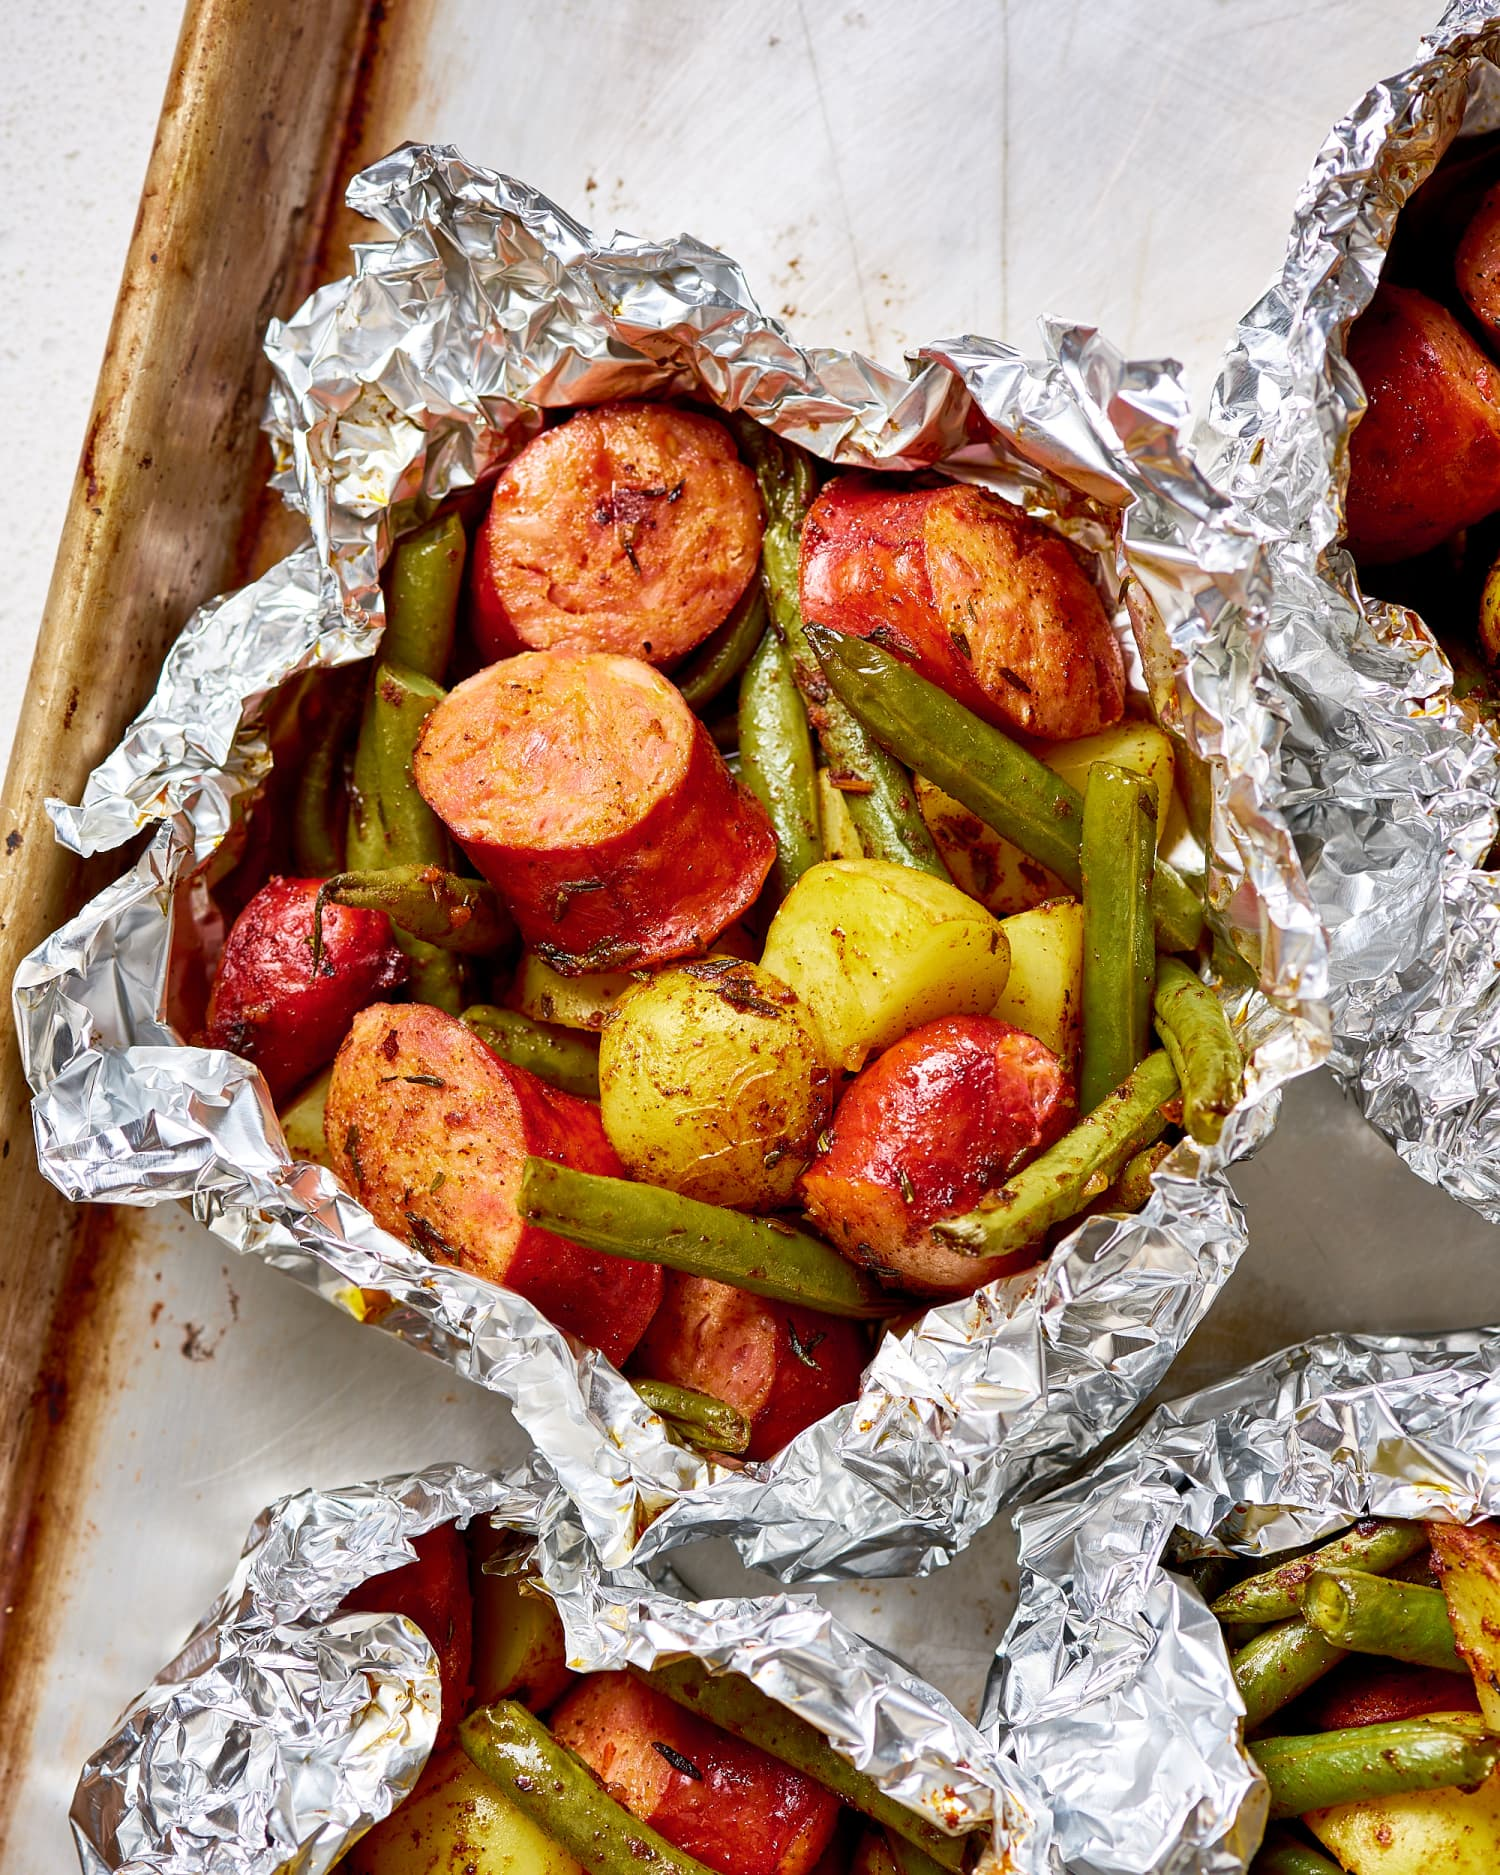 Recipe: Sausage & Potato Foil Packets